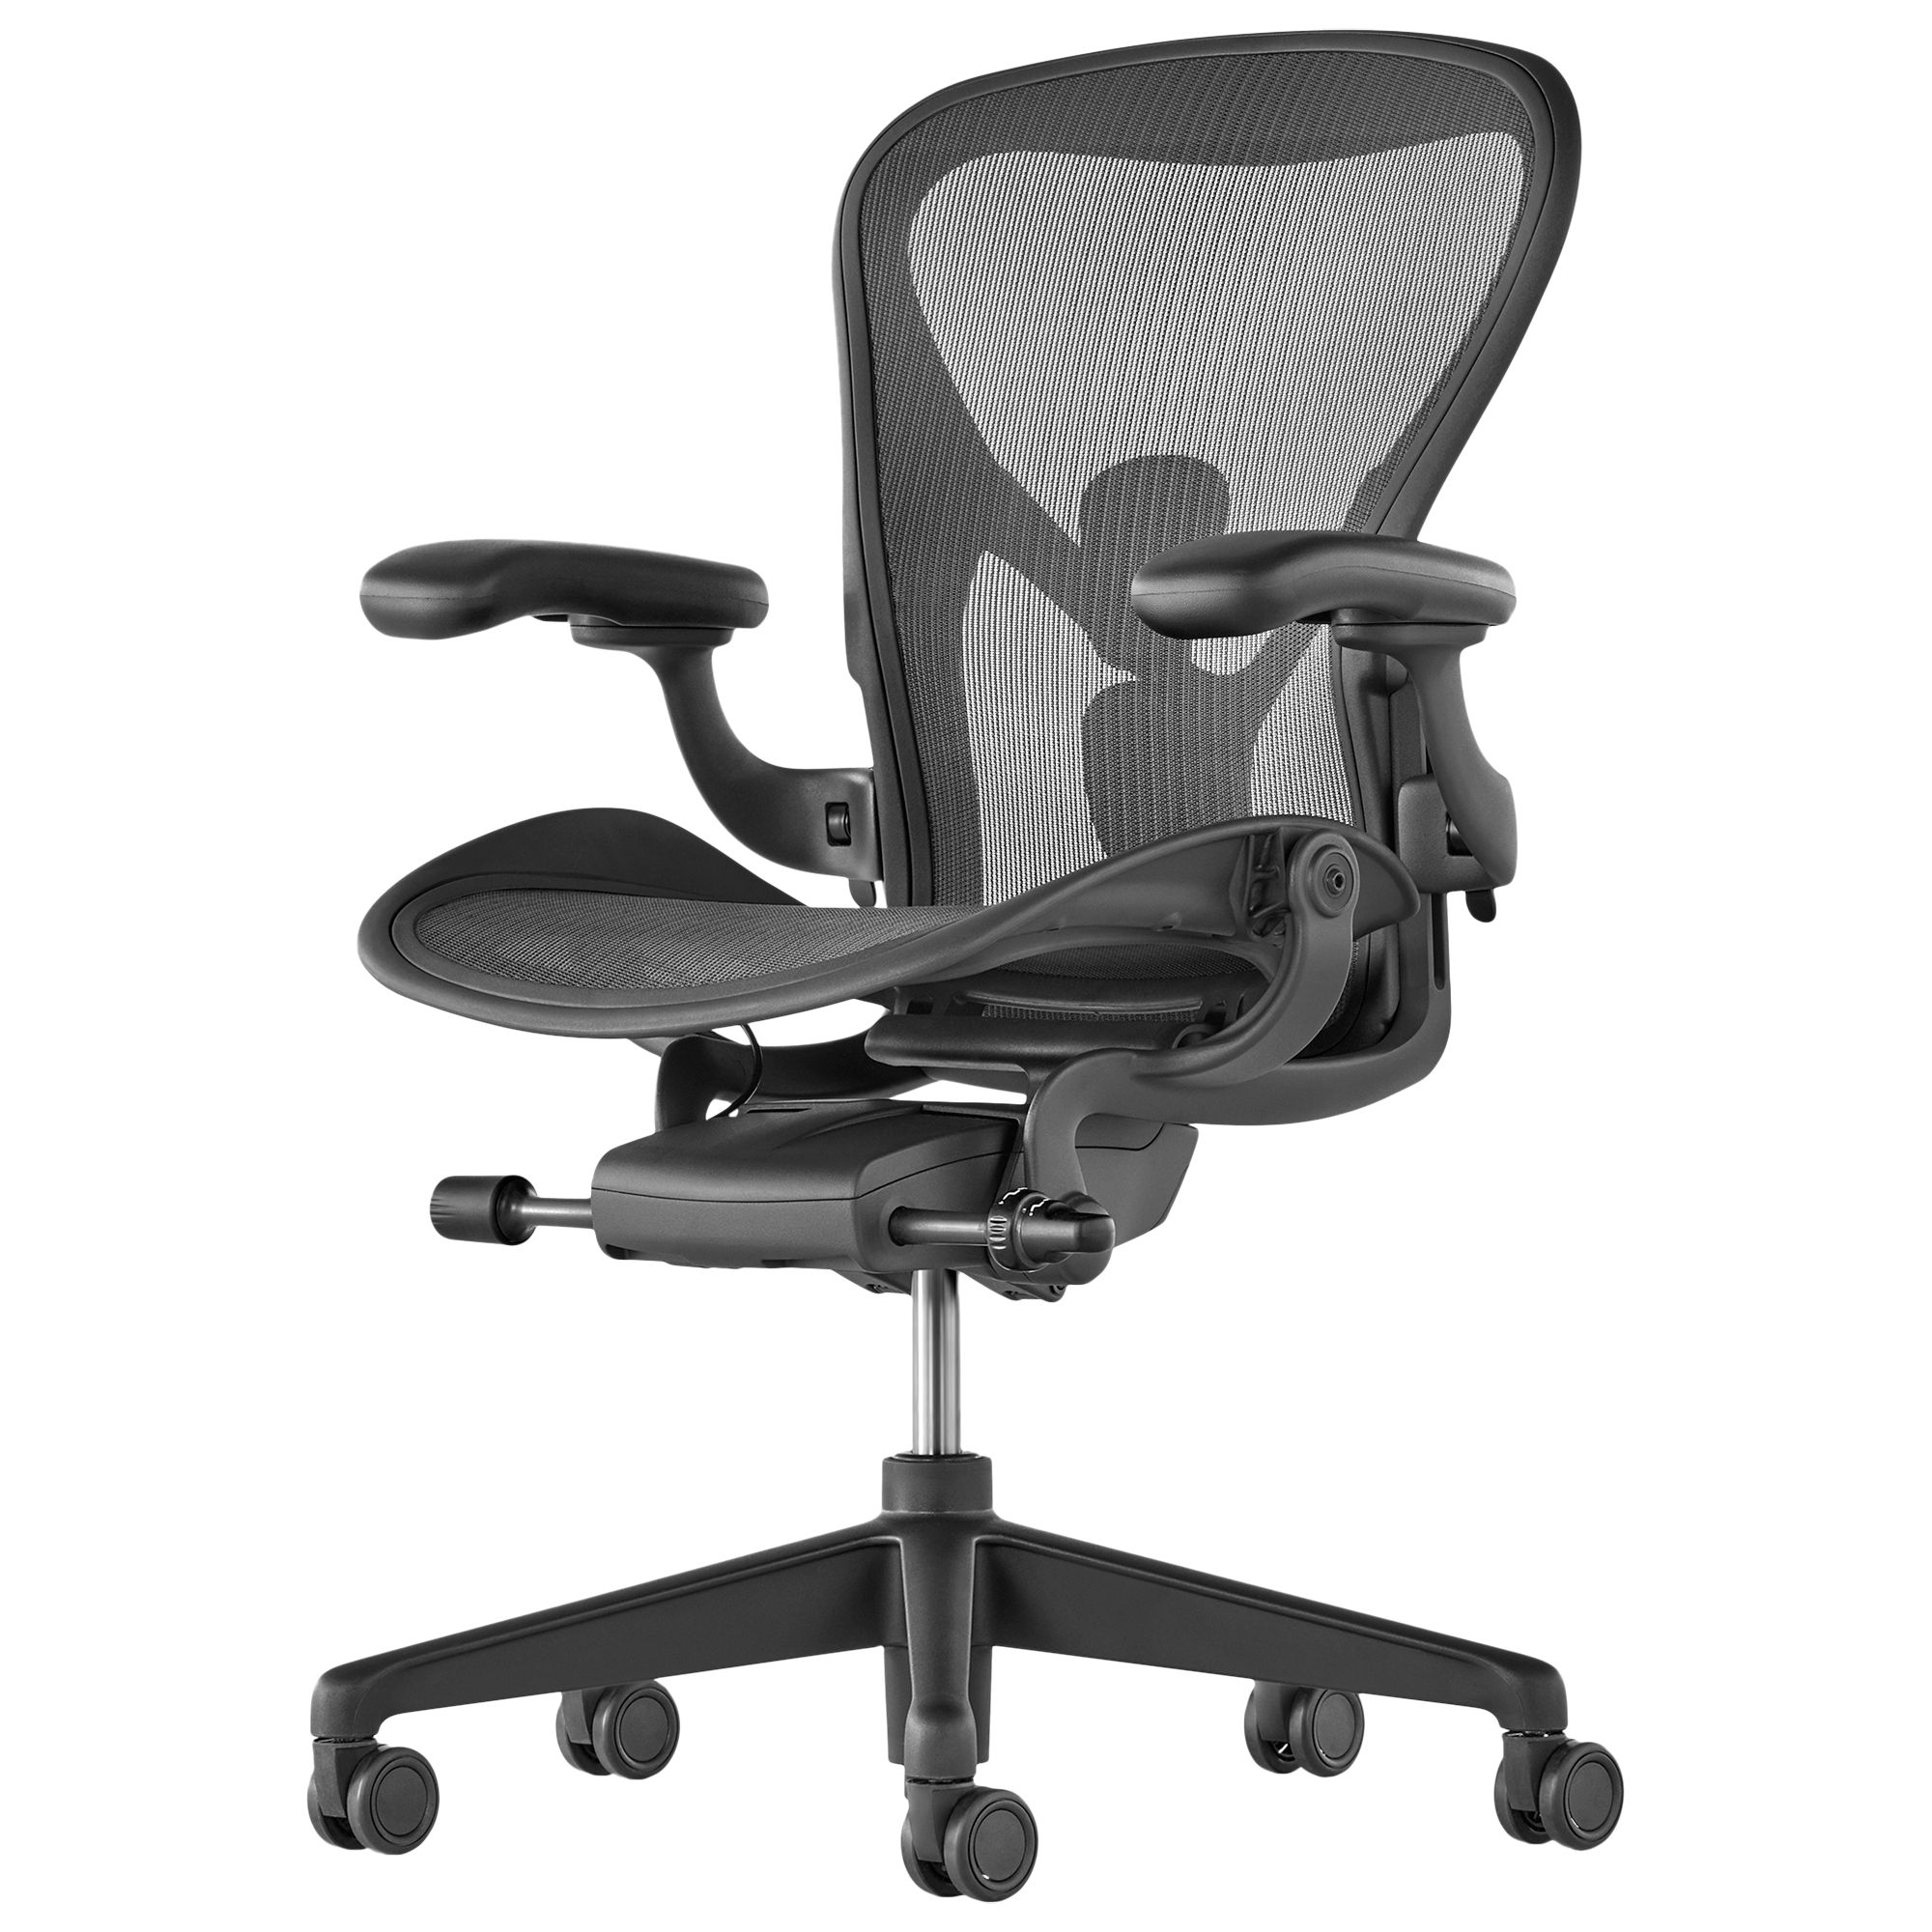 Herman Miller Herman Miller Aeron Office Chair, Graphite